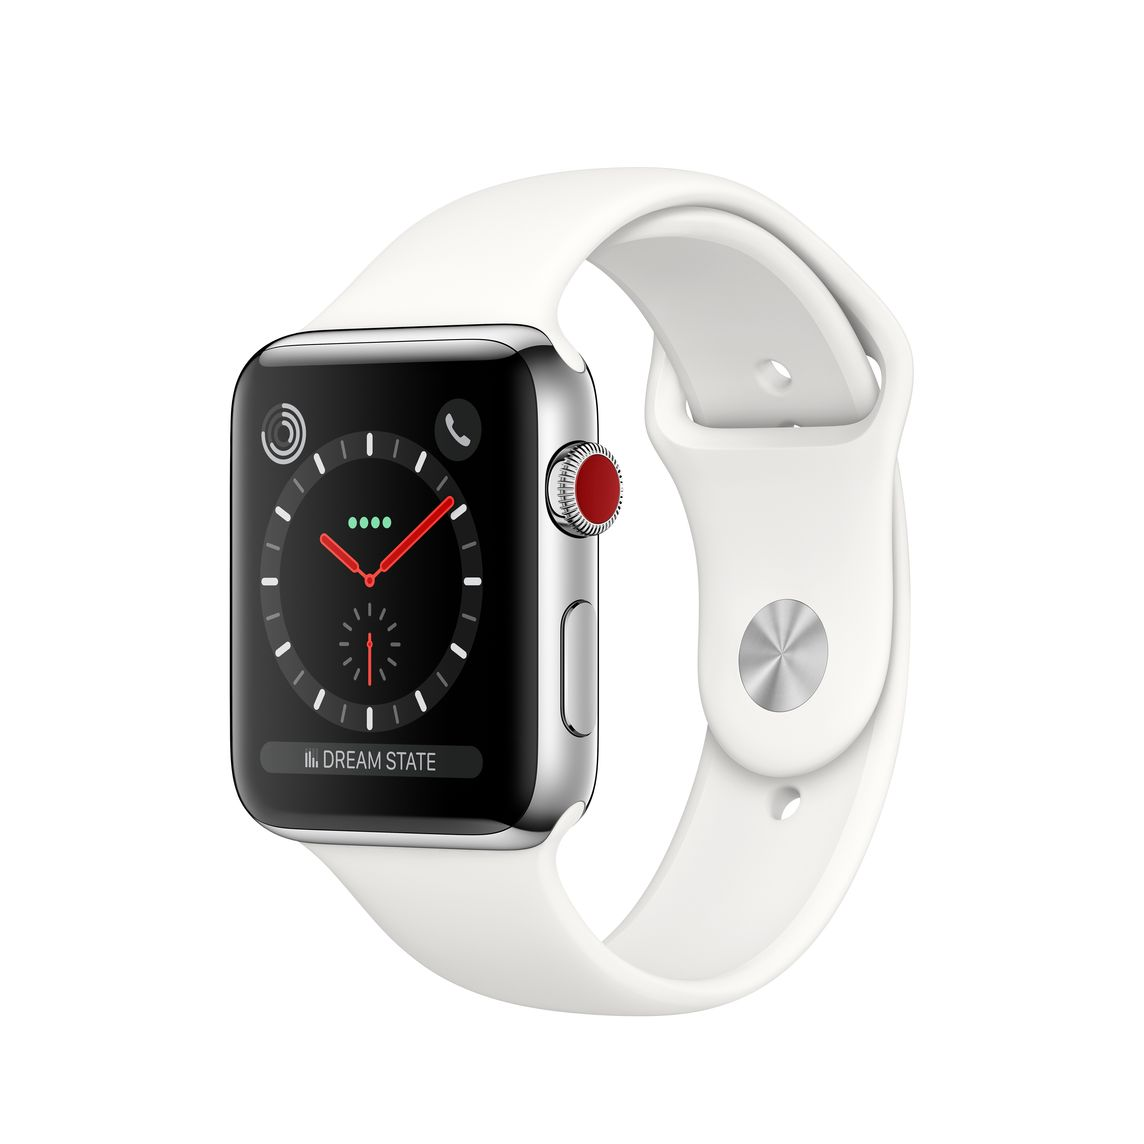 9aa7b4eecd1 Refurbished Apple Watch Series 3 GPS + Cellular, 42mm Stainless Steel Case  with Soft White Sport Band - Apple (UK)